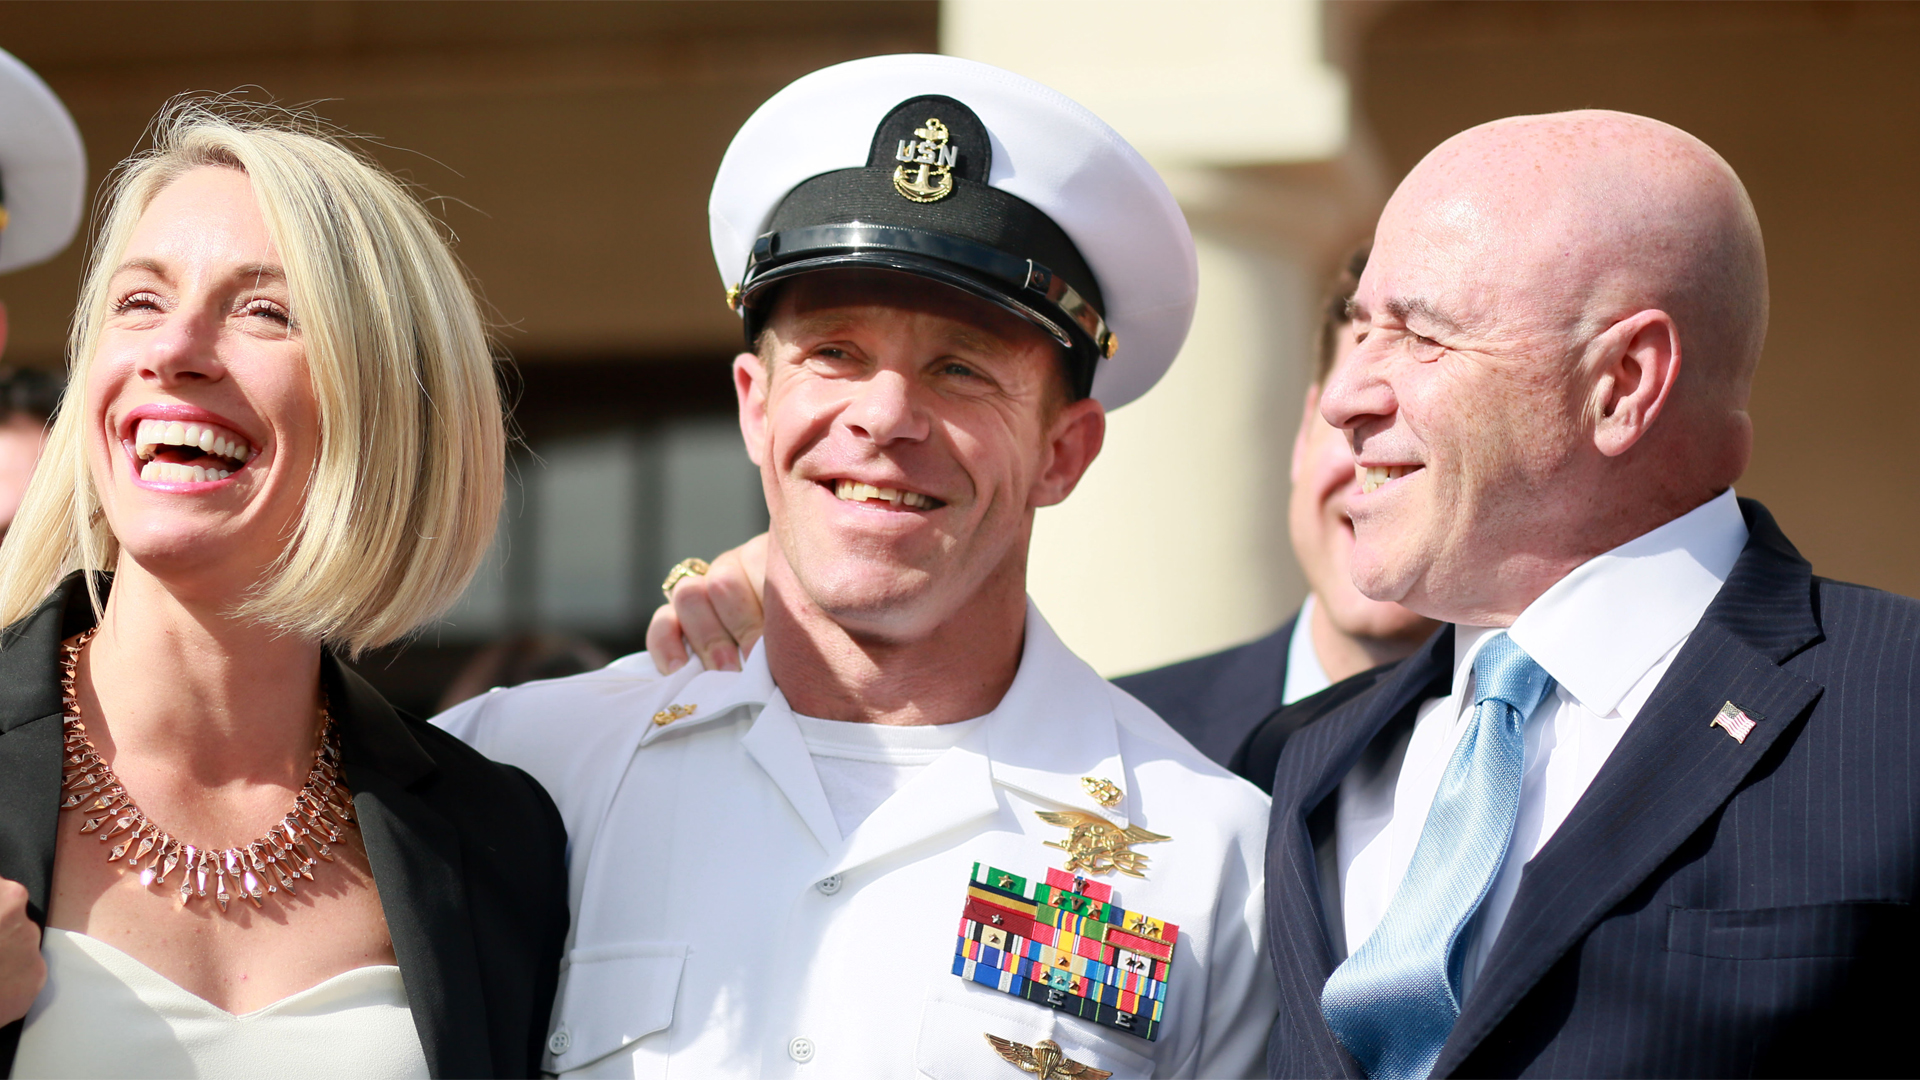 Navy Special Operations Chief Edward Gallagher celebrates with his wife Andrea after being acquitted of premeditated murder at Naval Base San Diego July 2, 2019, in San Diego. (Credit: Sandy Huffaker/Getty Images)